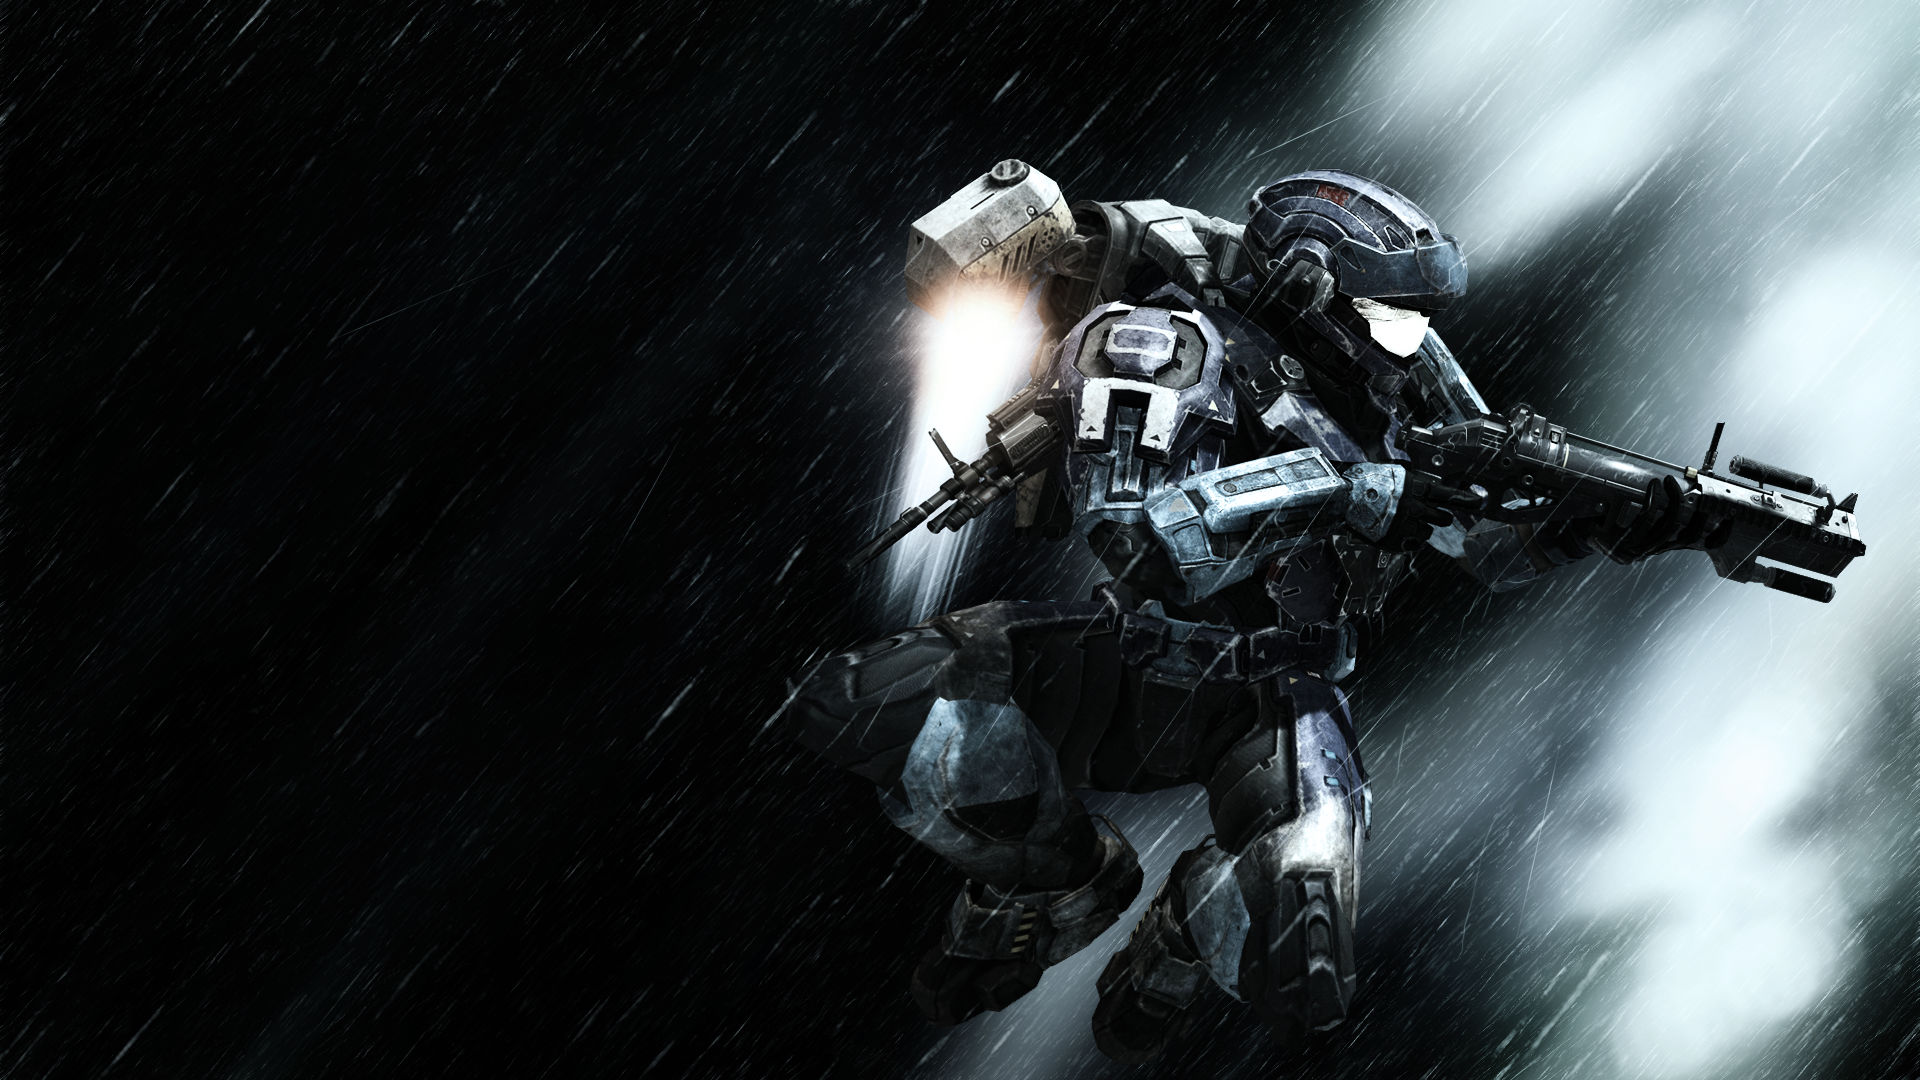 73 Halo Reach Hd Wallpapers Background Images Wallpaper Abyss